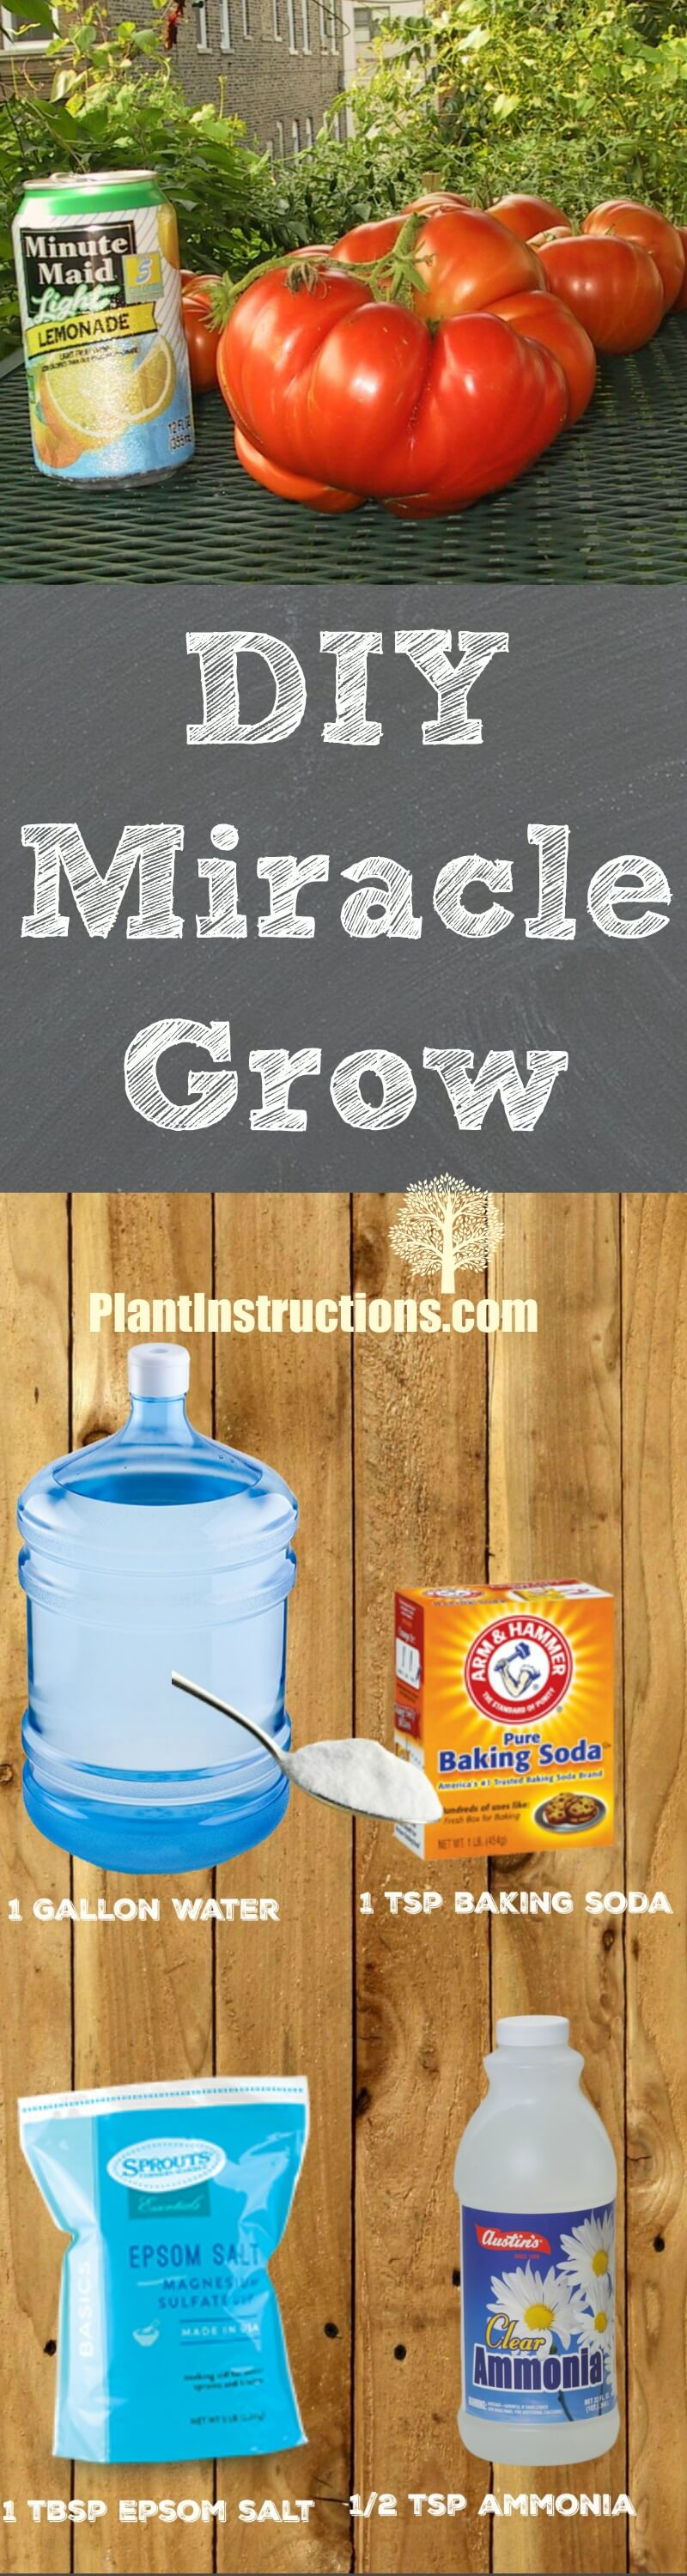 This homemade miracle grow recipe contains all natural ingredients so you know your plant is getting the best every time you feed it!